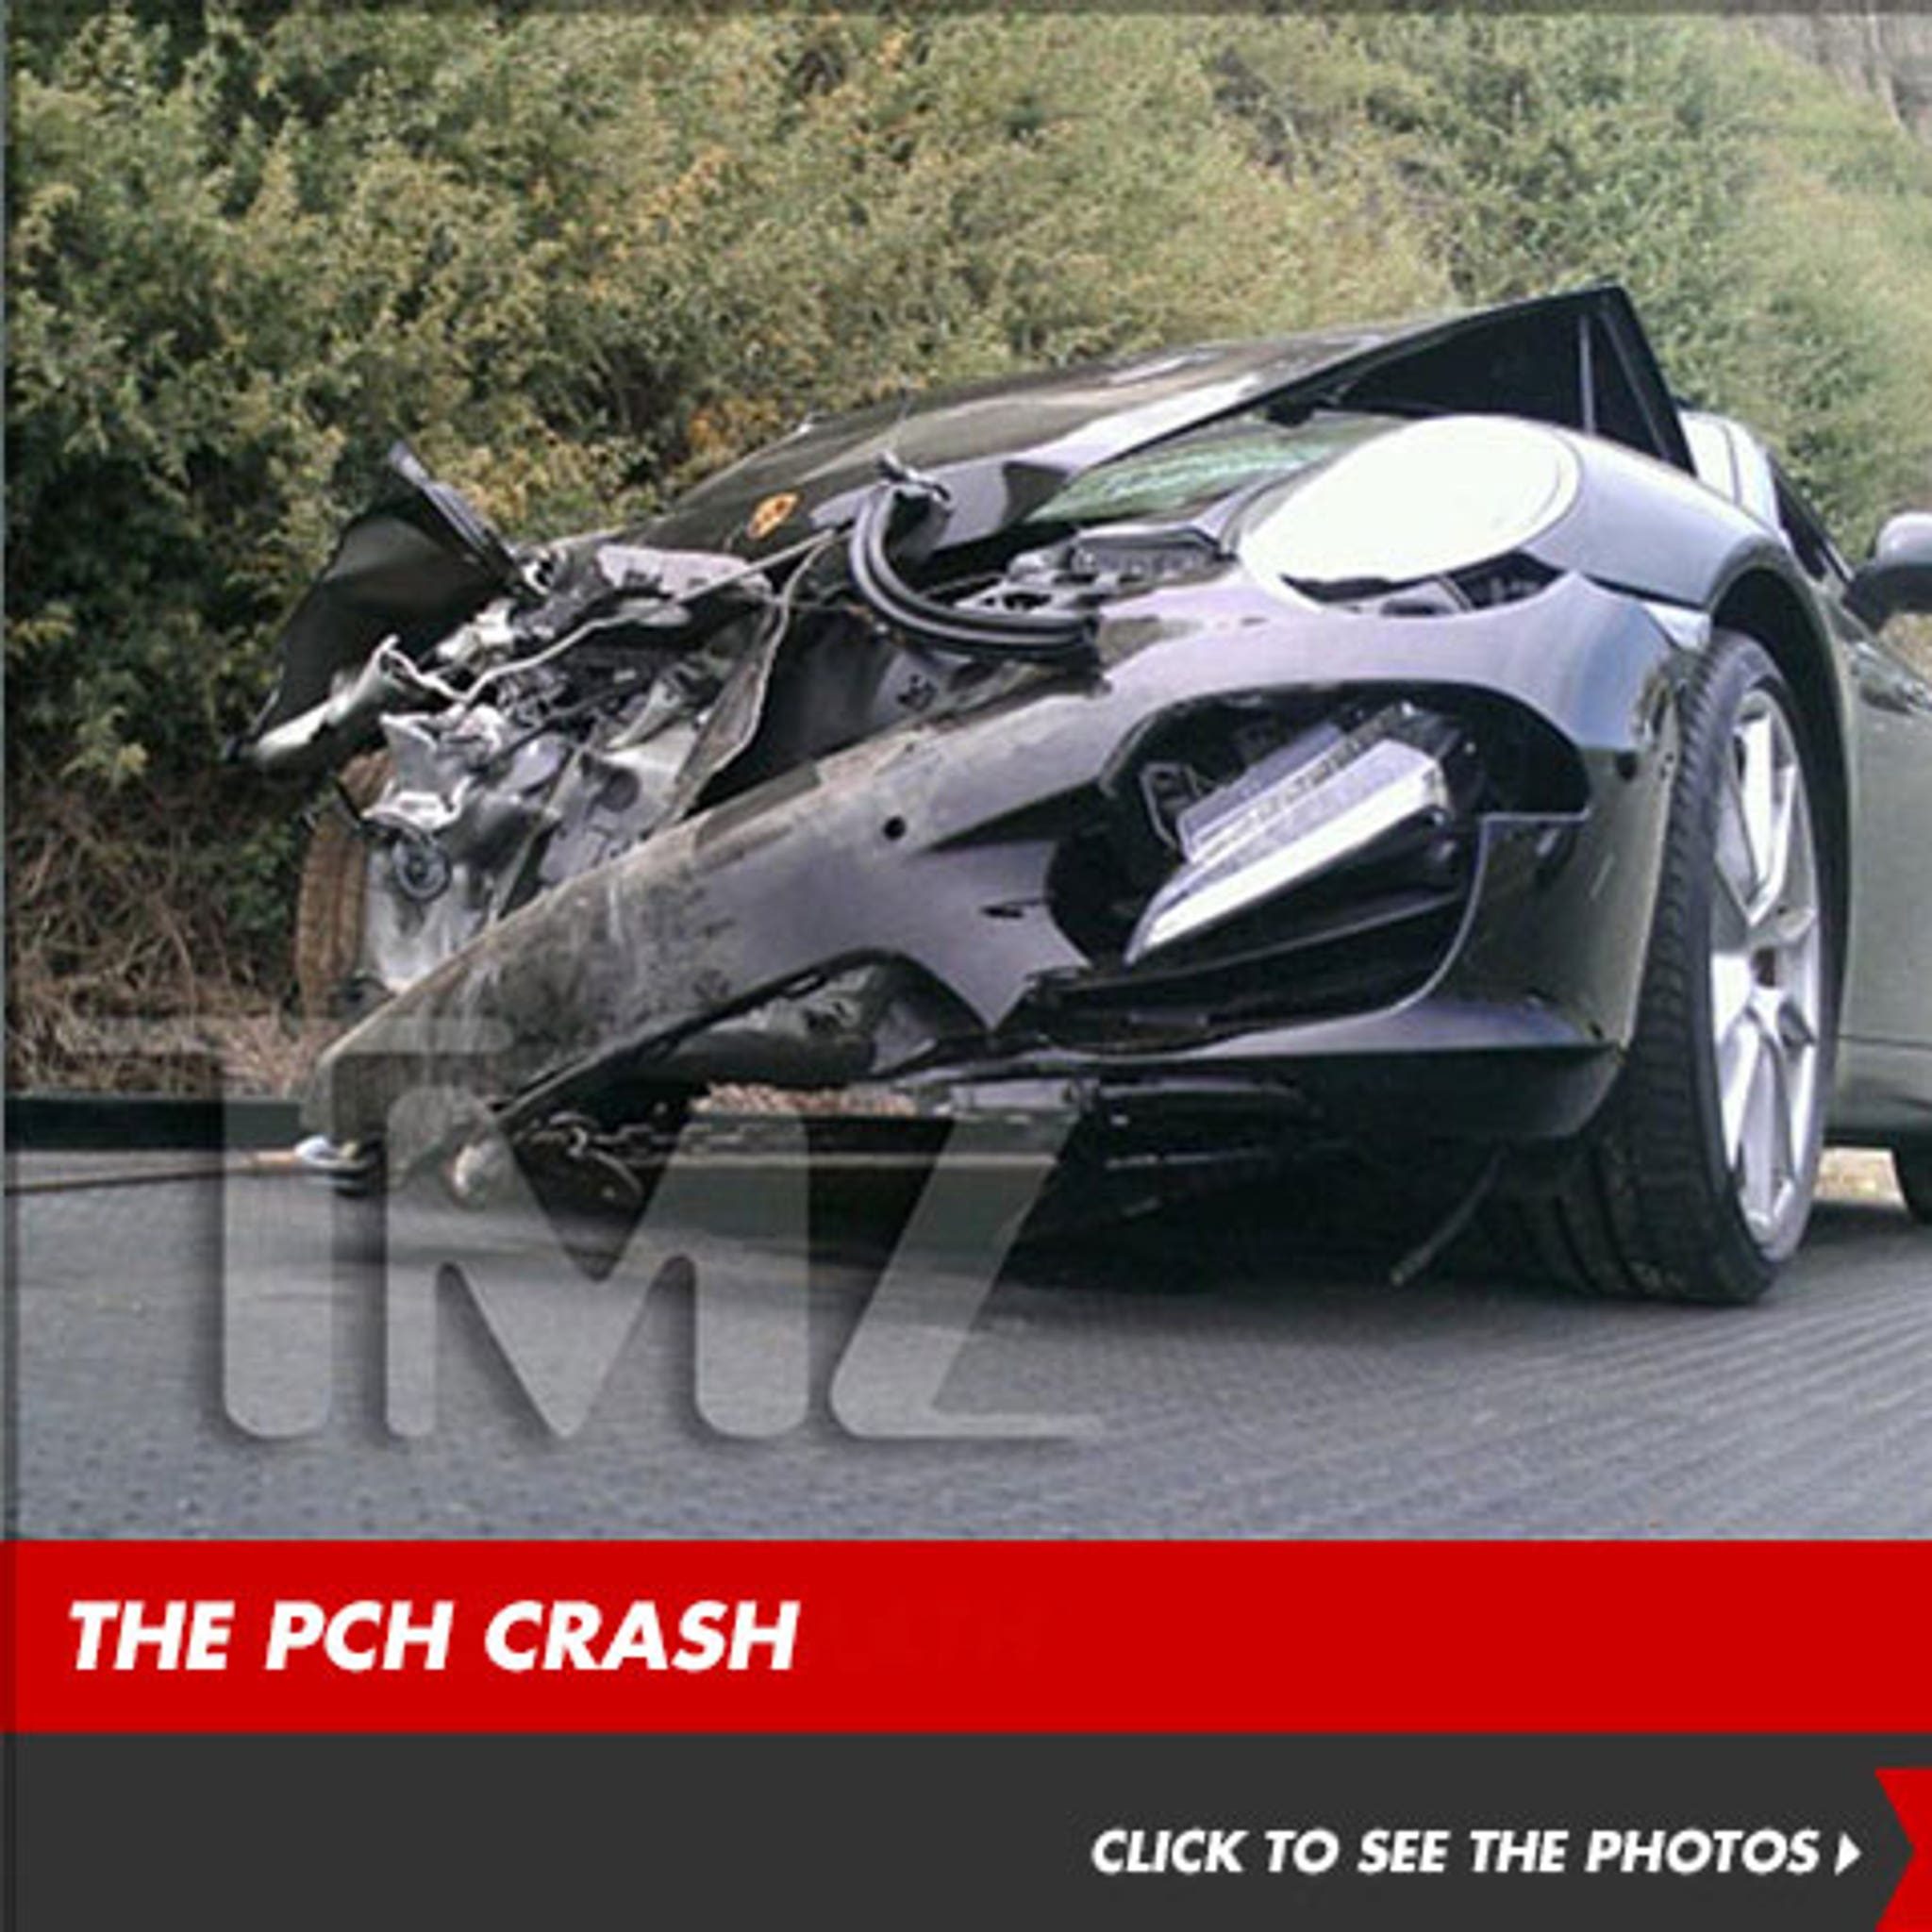 Lindsay Lohan Sued Over PCH Car Accident